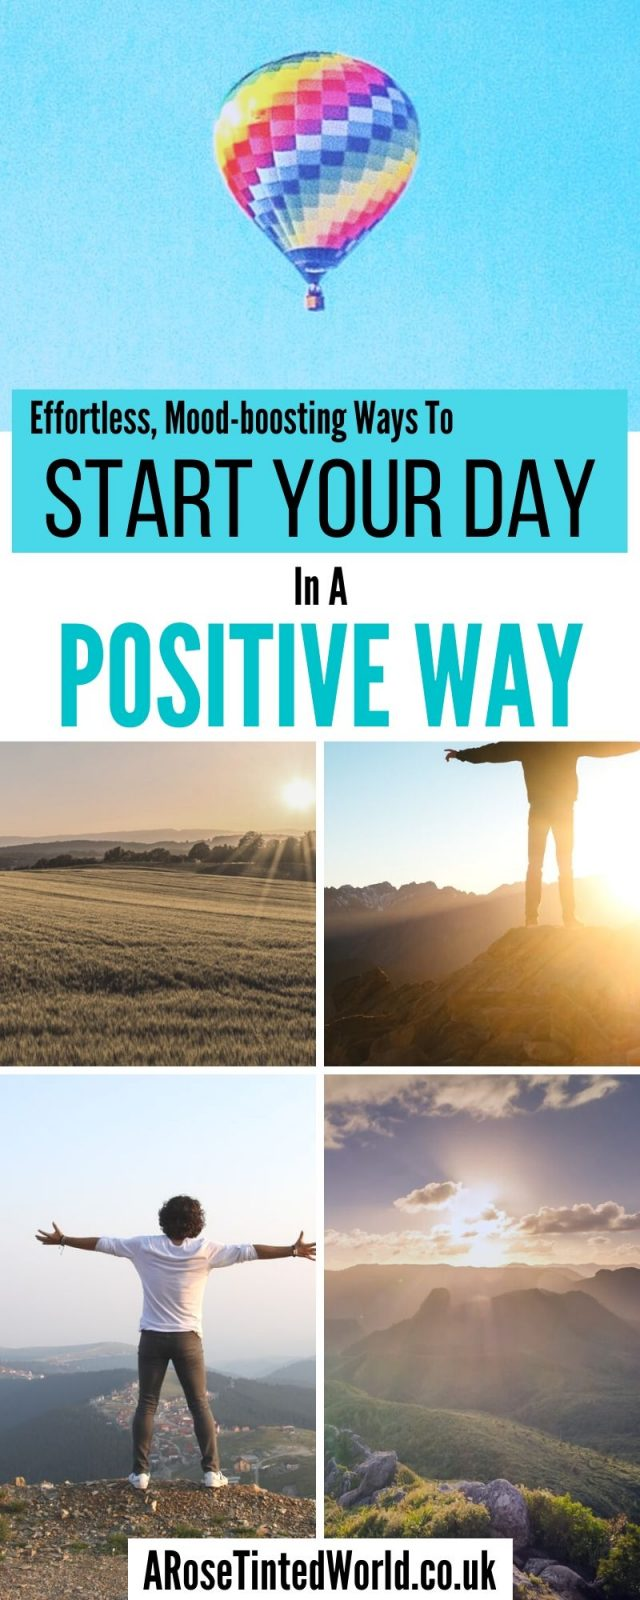 Positive Ways to Start Your Day - some effortless and simple tricks that you can do to instantly boost your mood on a morning when you get up. Use these life changing tips to instantly feel more positive #positivethinking #positivethoughts #positivemindset #positiveenergy #wakeup #moodboost